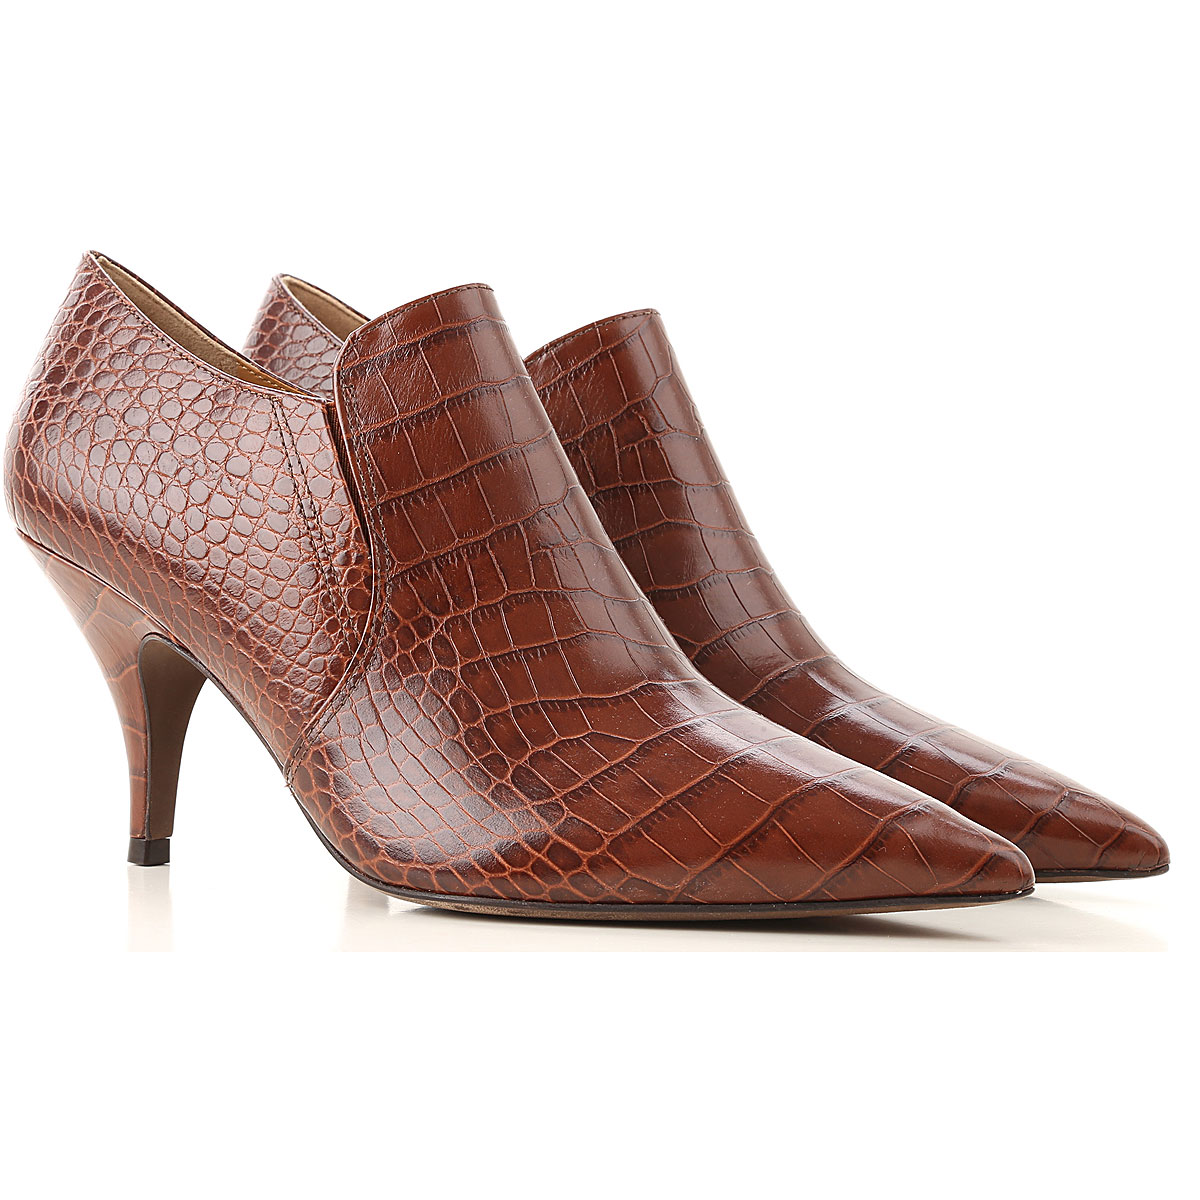 Tory Burch Boots for Women, Booties On Sale in Outlet, Brown, Leather, 2019, 10 8.5